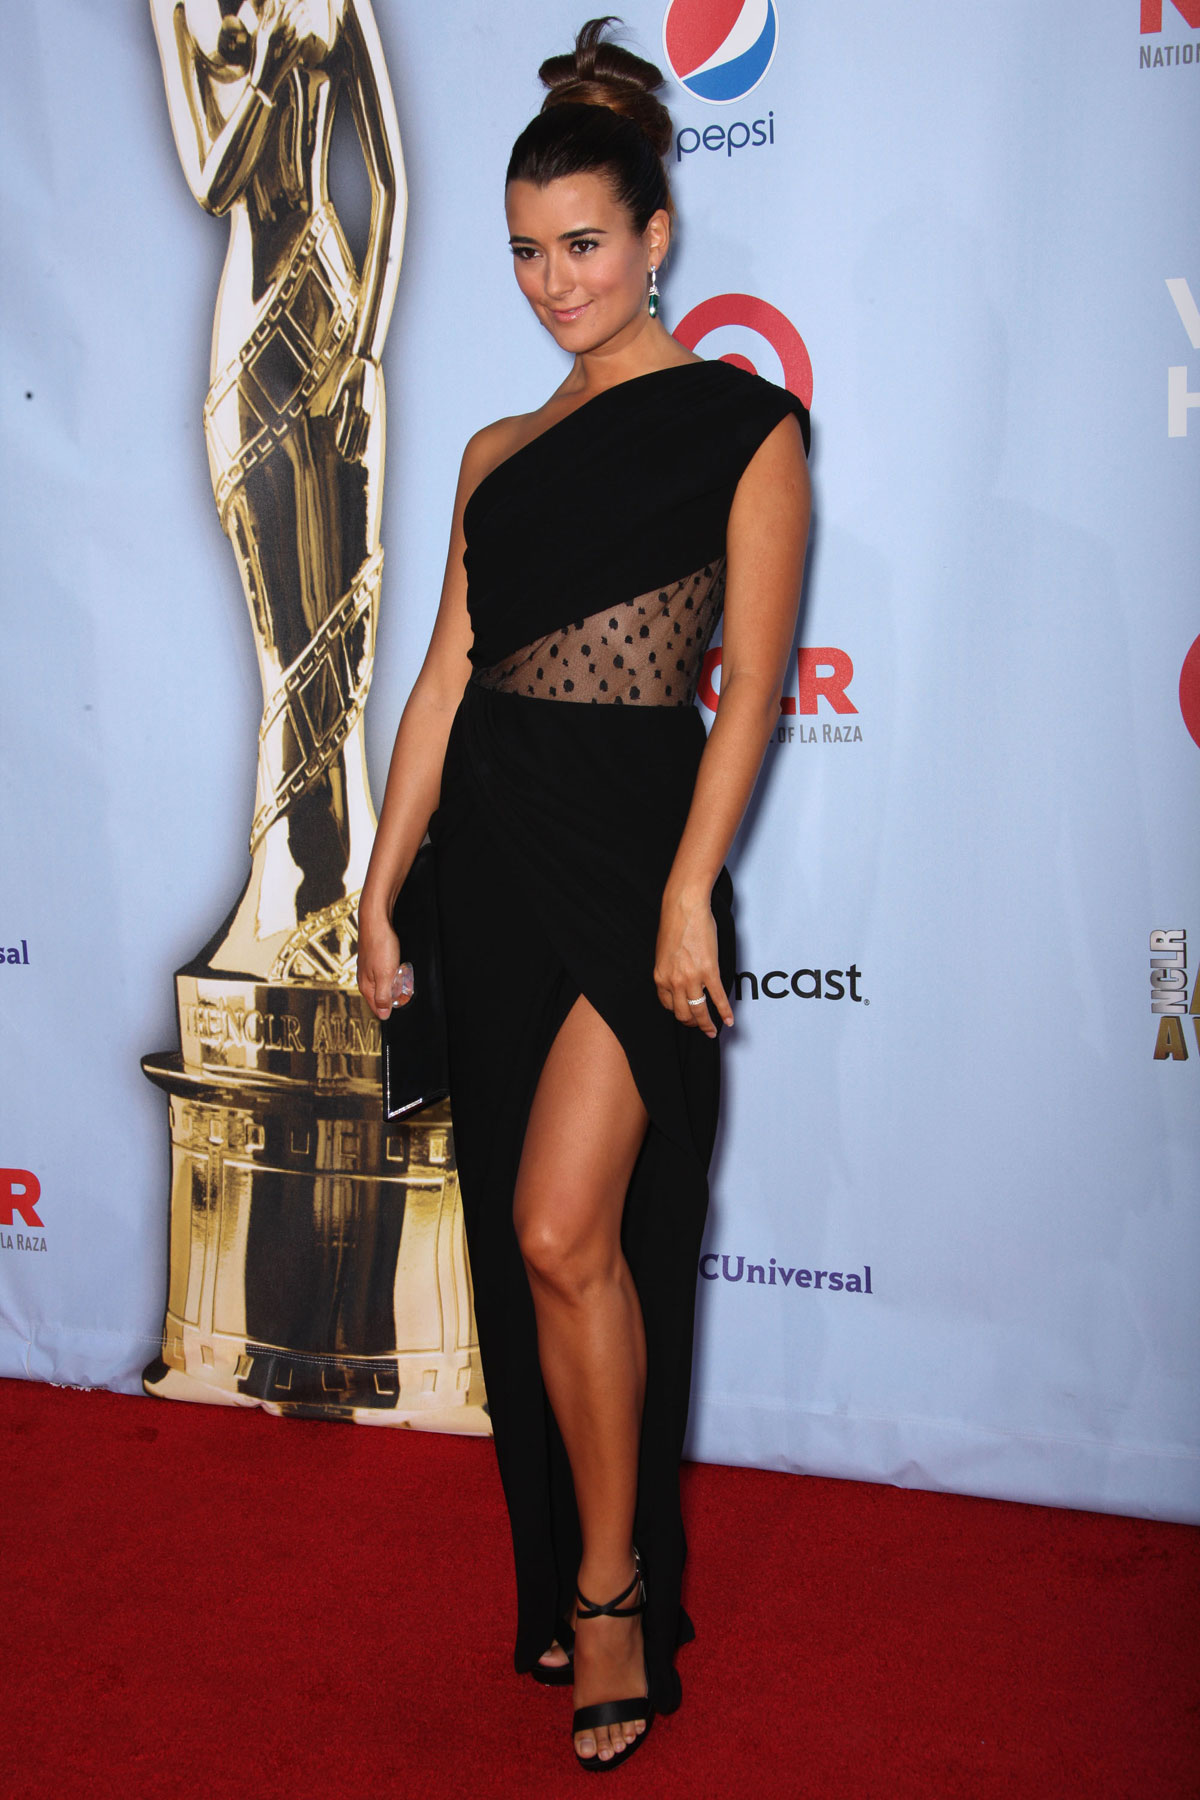 COTE De PABLO at 2012 NCLR ALMA Awards in Pasadena